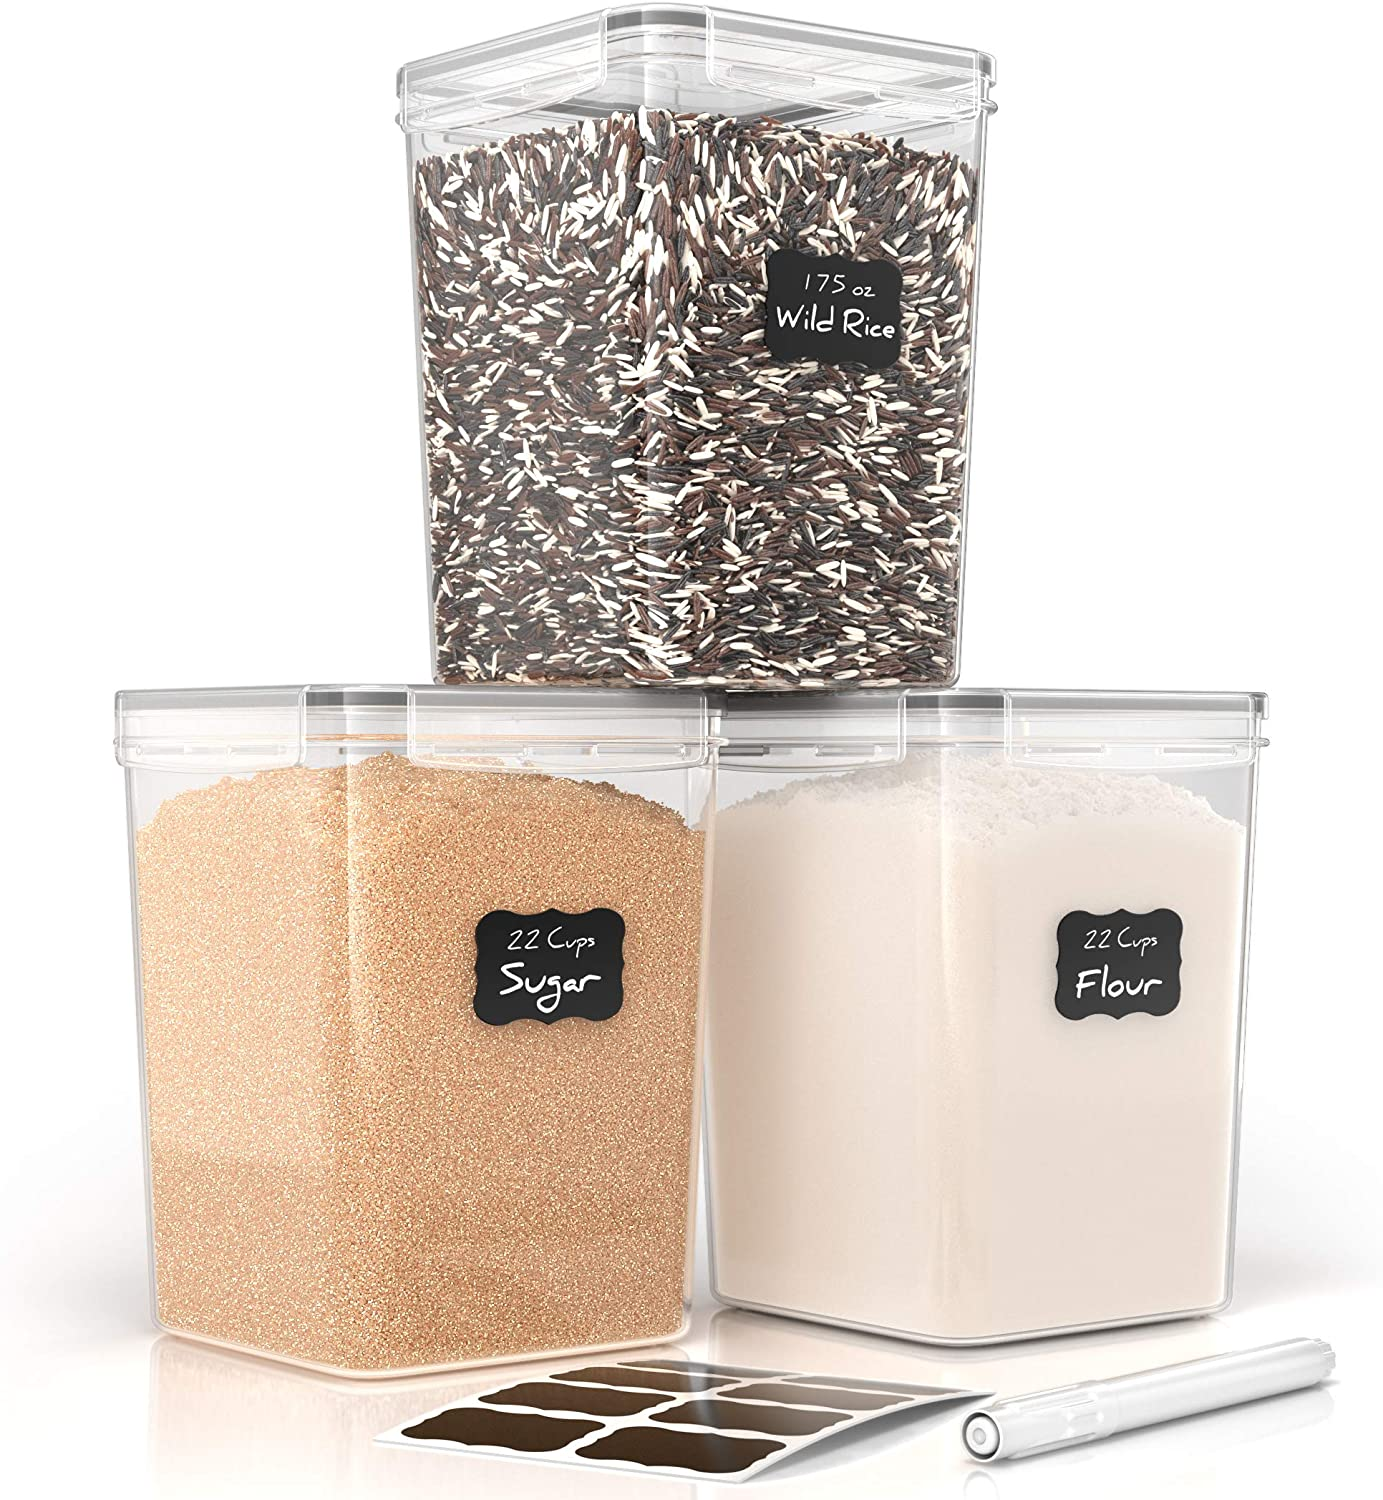 Airtight Food Storage Containers for Flour and Sugar by Simple Gourmet. 3-Piece Kitchen Storage Containers BPA Free + Labels & Marker. Cereal and Flour Containers Storage Set for Pantry Organization